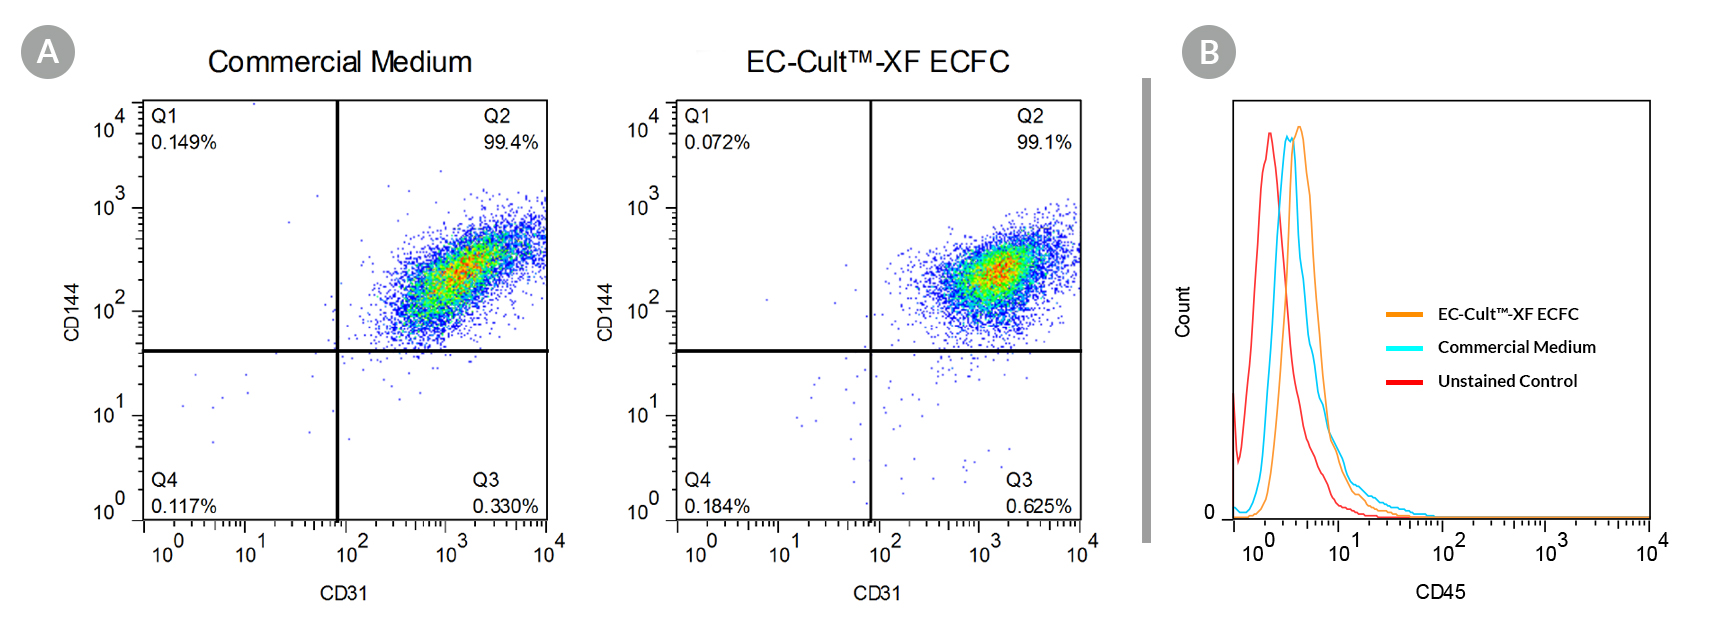 Human ECFCs Culture-expanded in EC-Cult™-XF ECFC Medium are Homogeneous and Maintain High Expression of Endothelial Cell Surface Markers